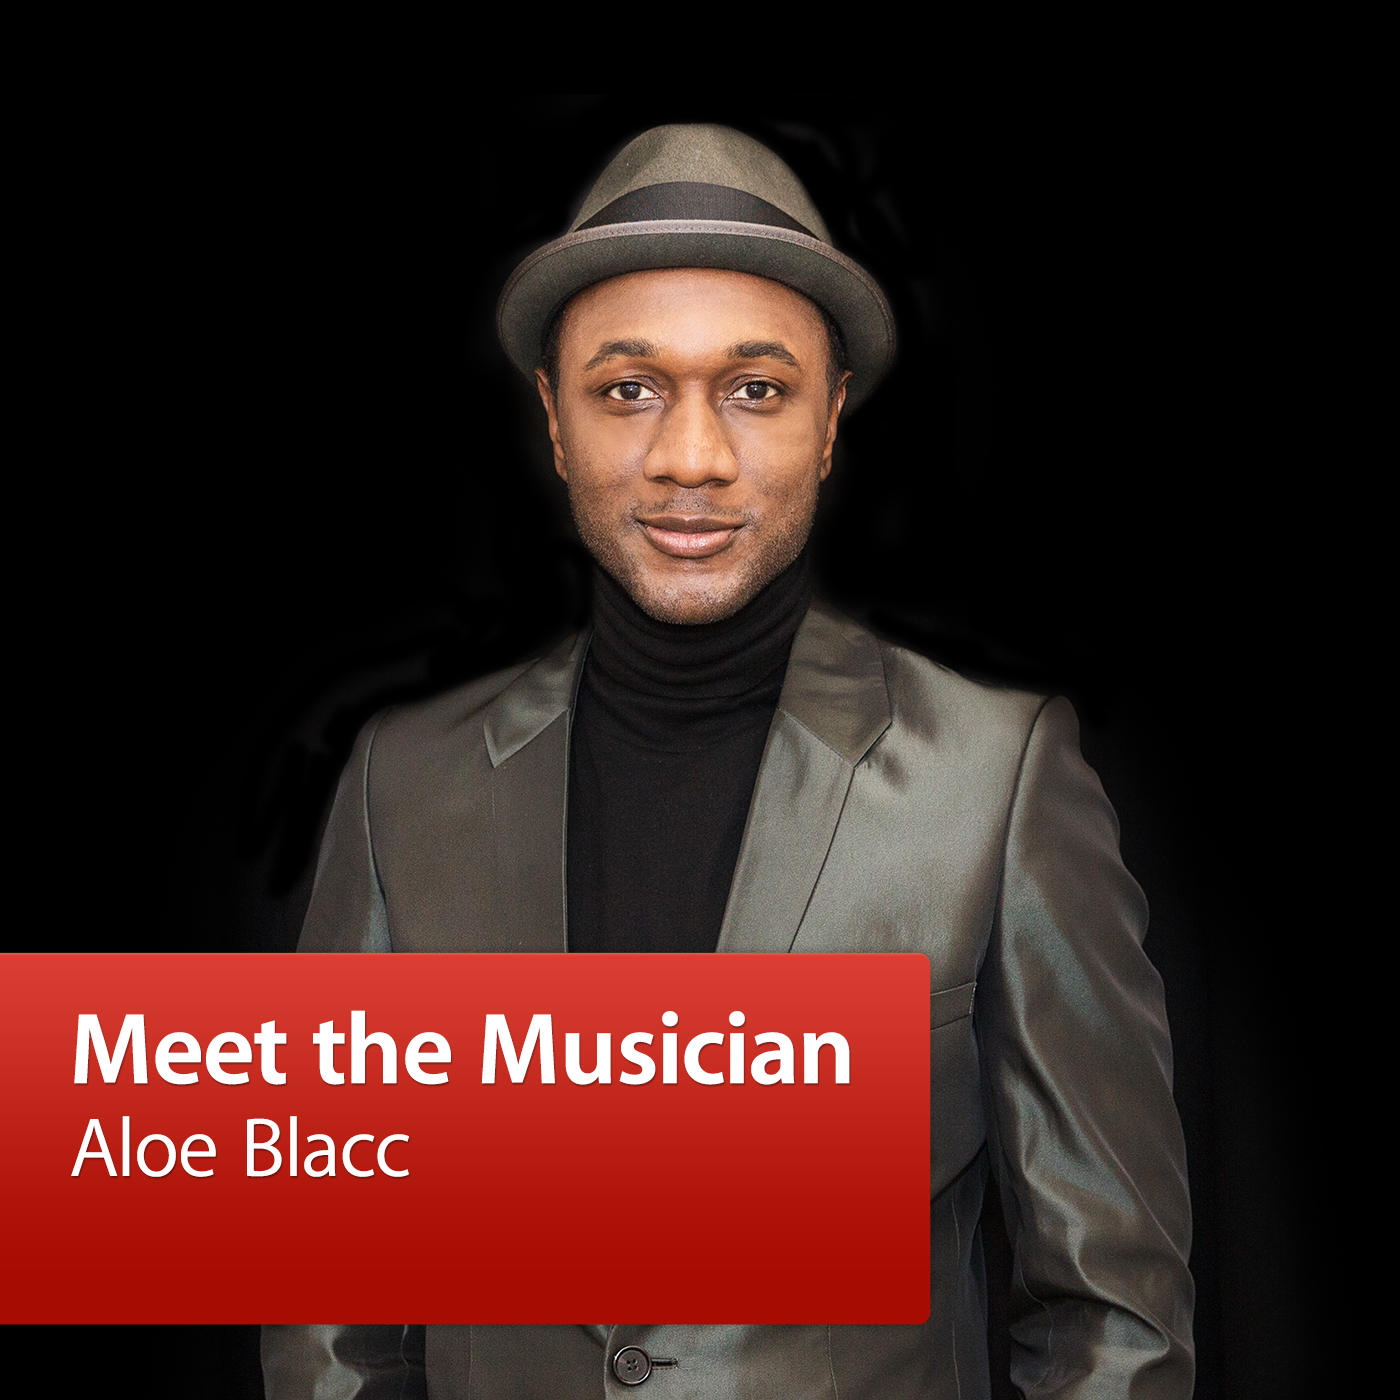 Aloe Blacc: Meet the Musician